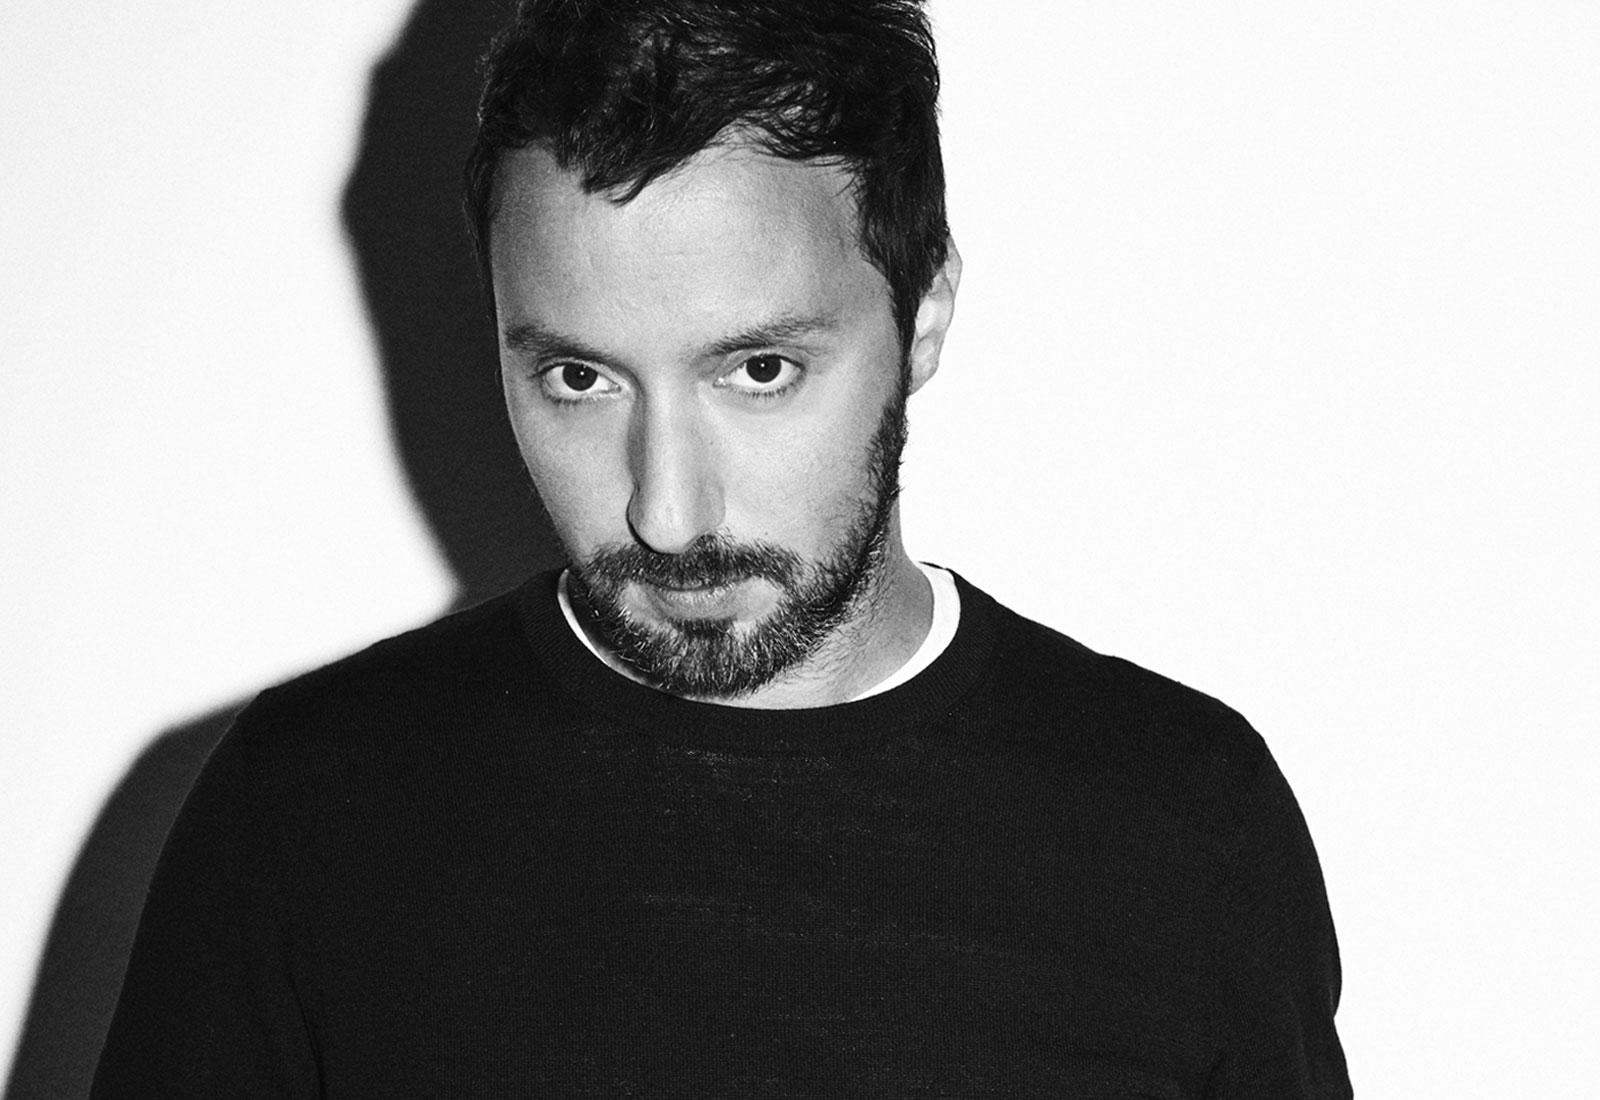 fashion designer anthony vaccarello for saint laurent new creative director 1600 x 1100